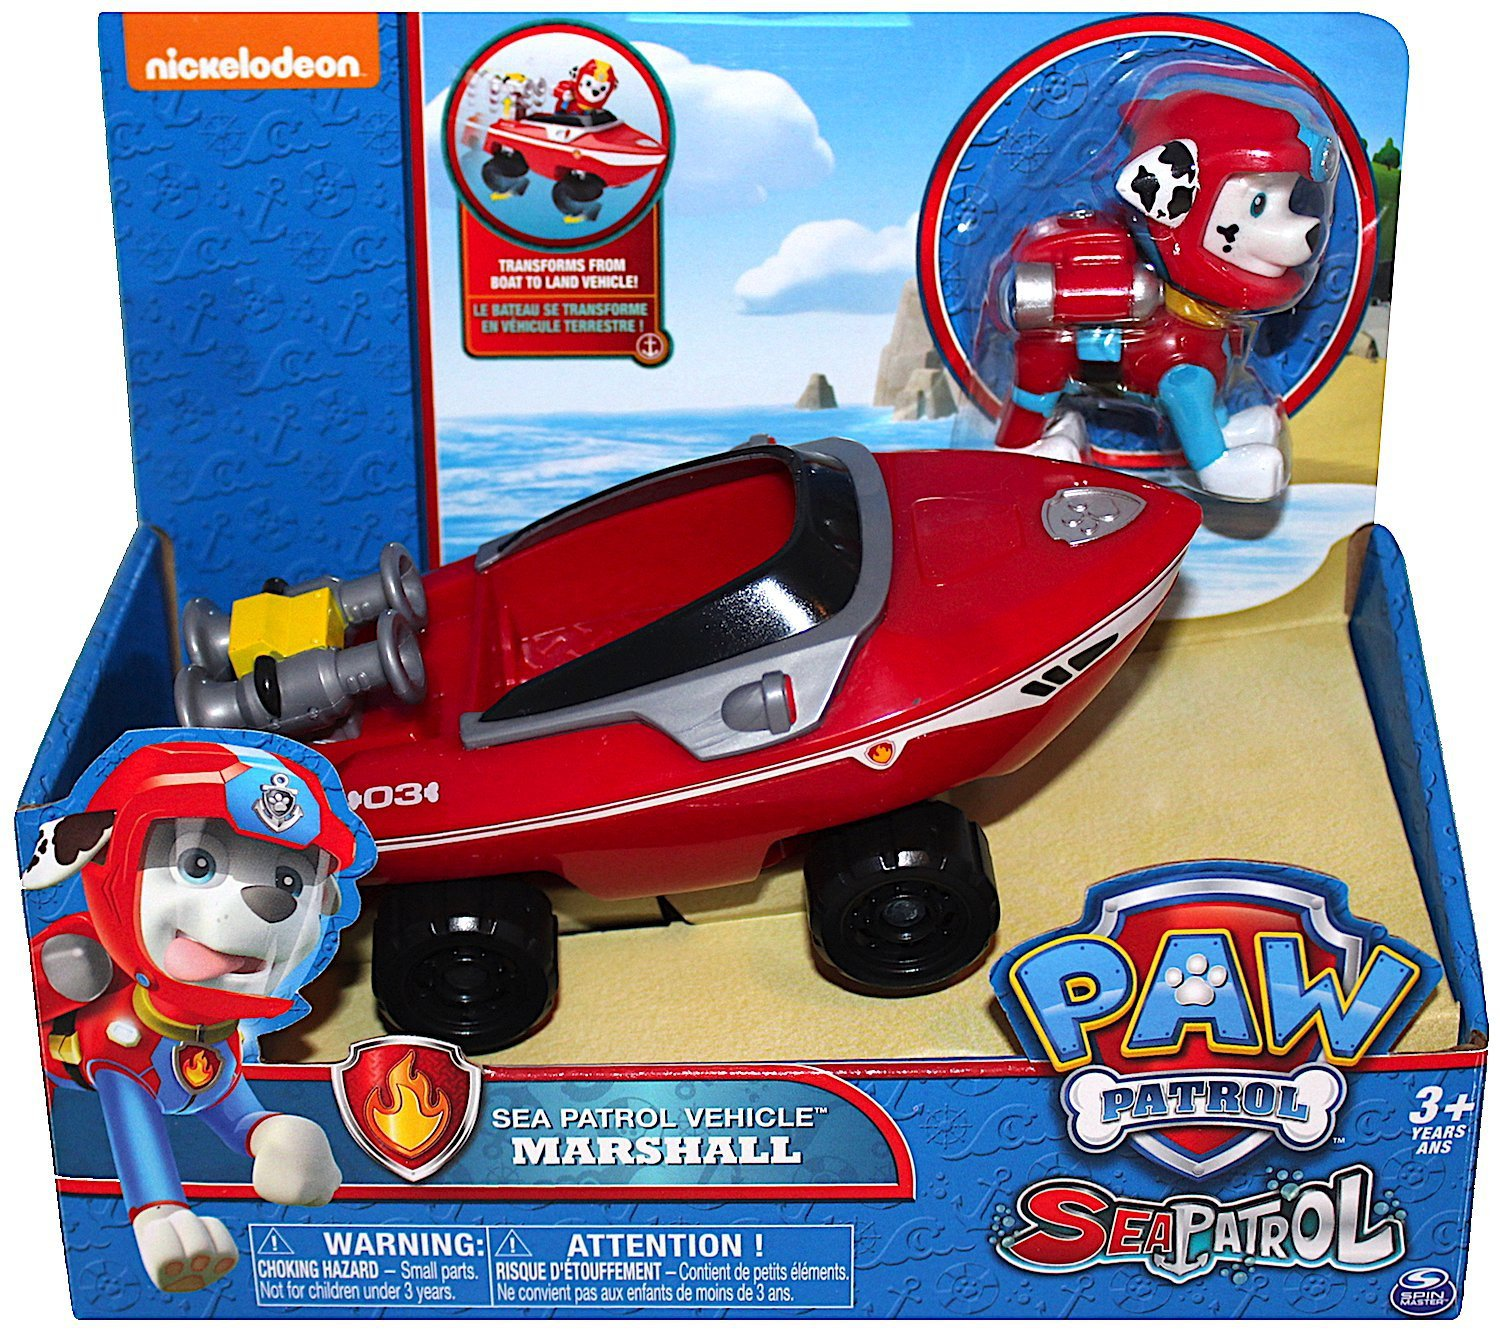 Nickelodeon Paw Patrol Marshall Sea Patrol Vehicle with Figure